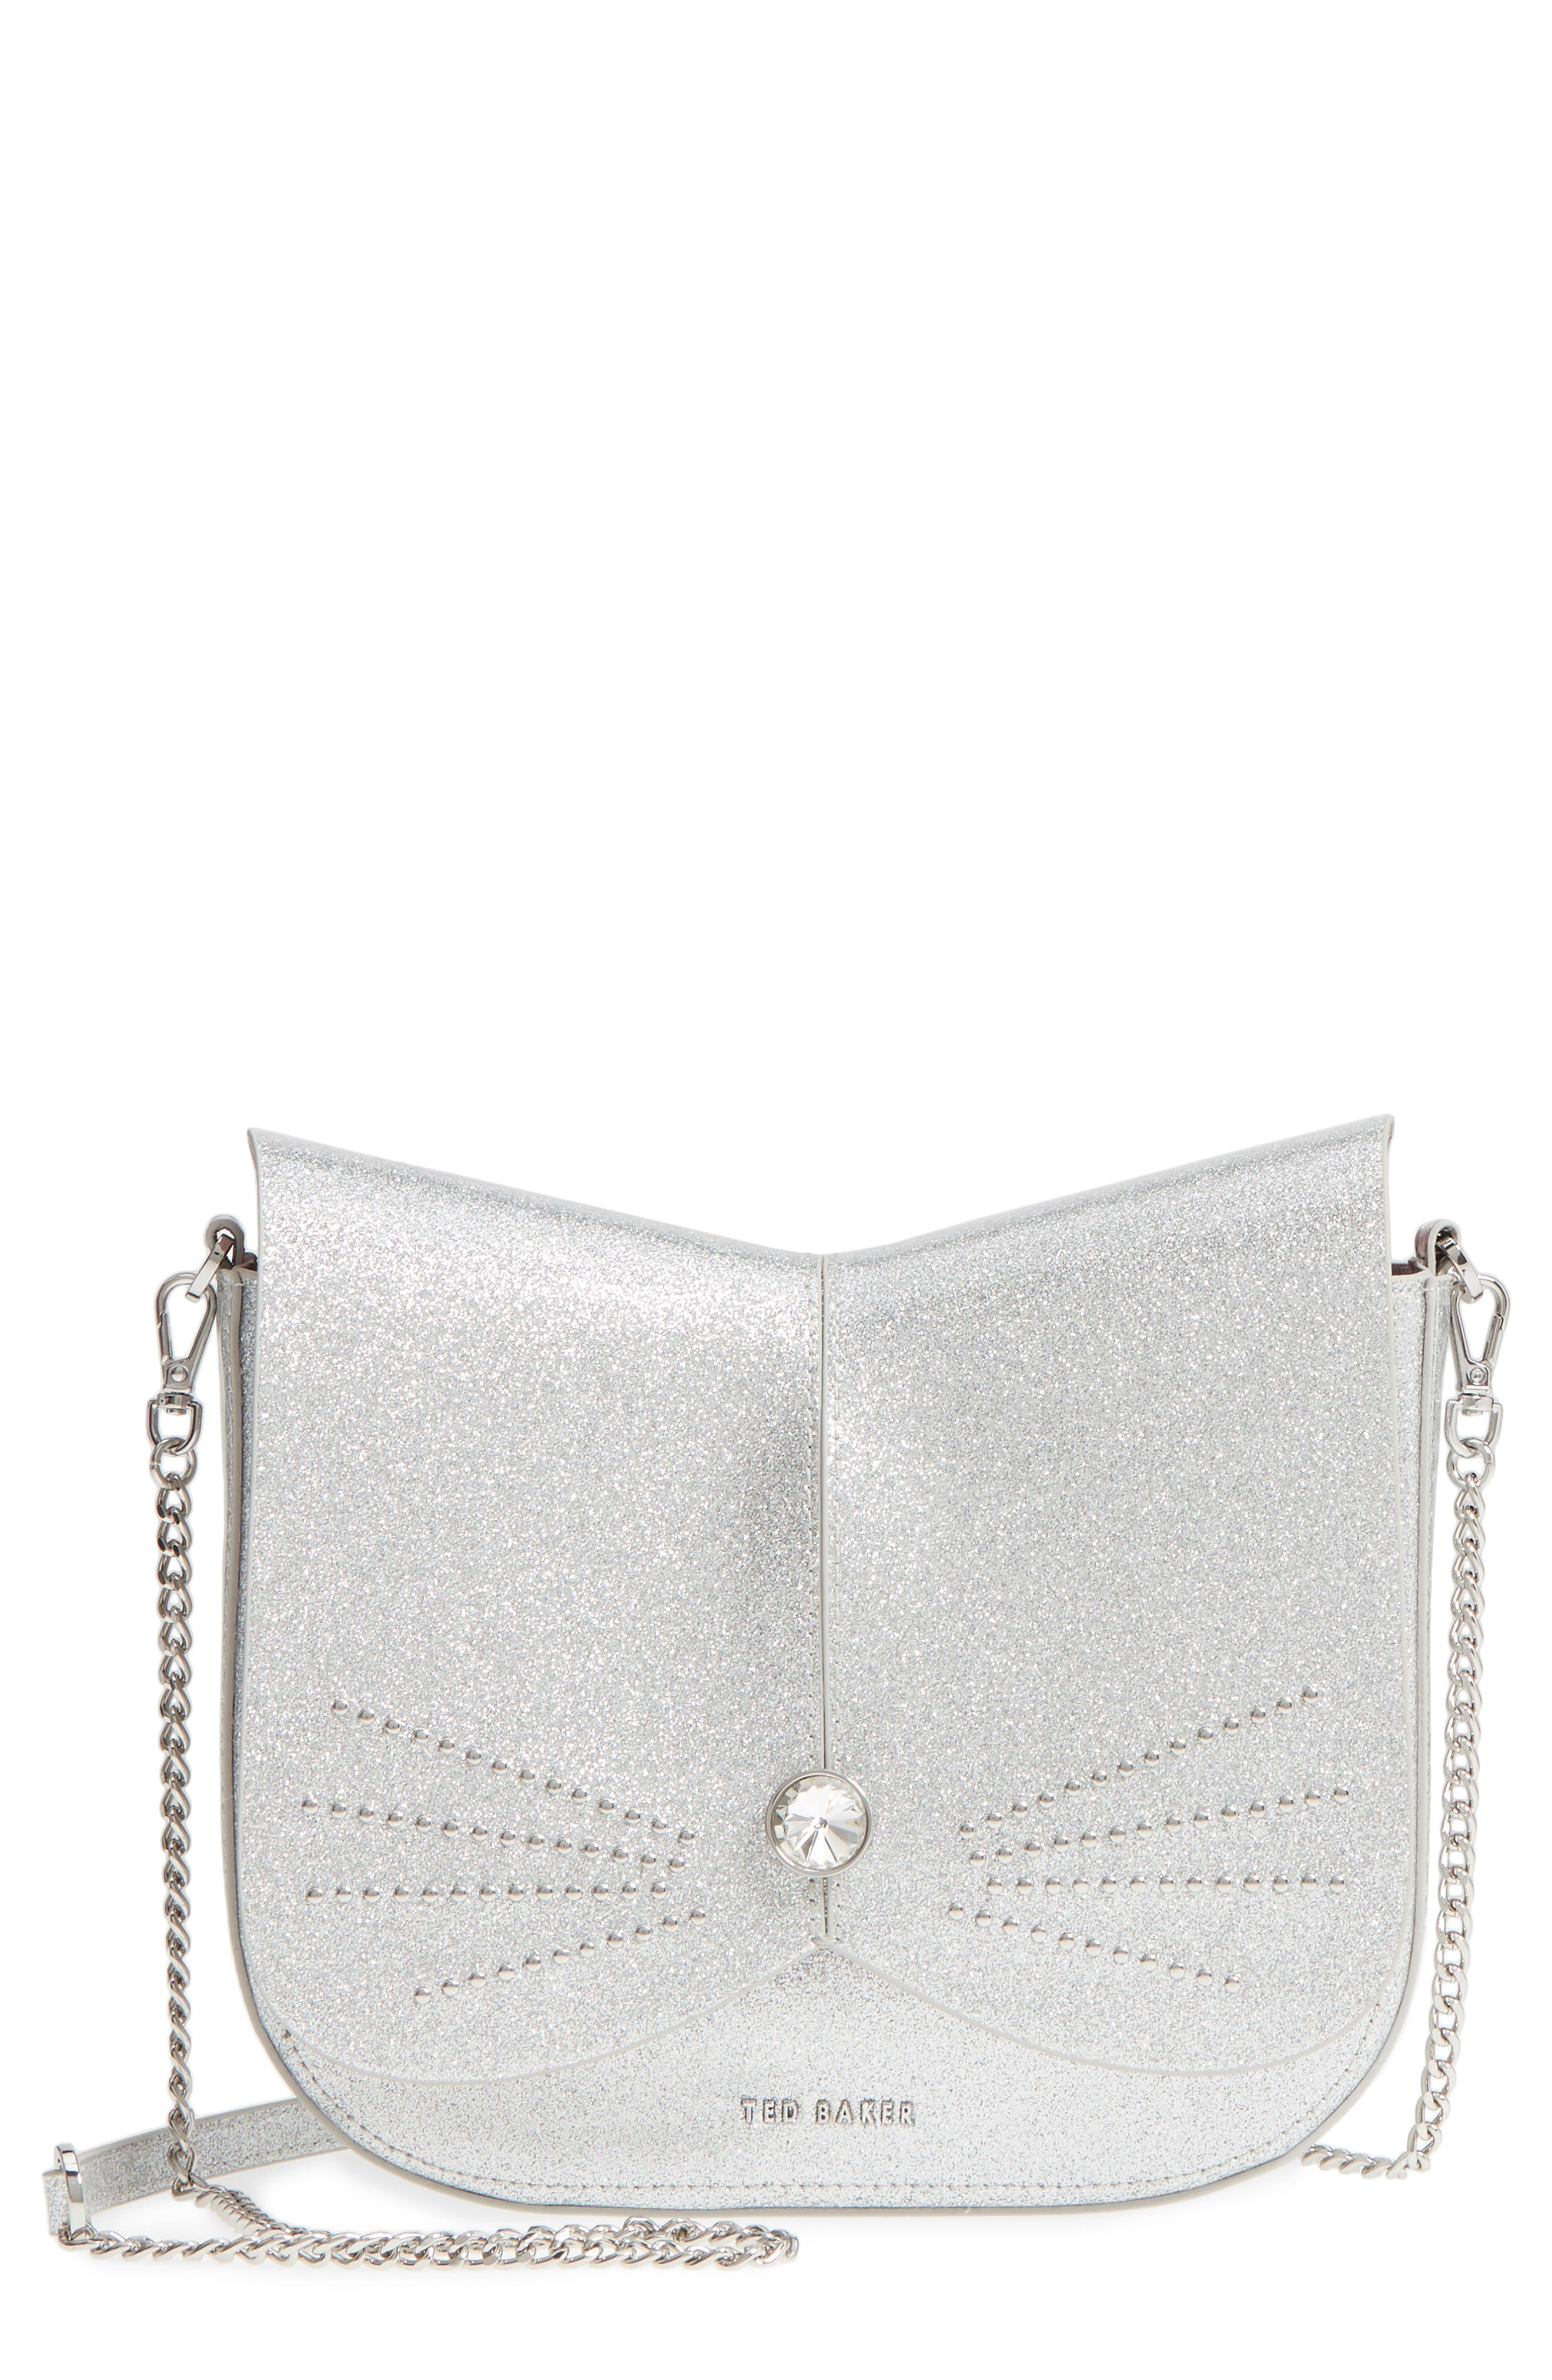 Hildaa Glitter Faux Leather Crossbody Bag,                             Main thumbnail 1, color,                             Silver